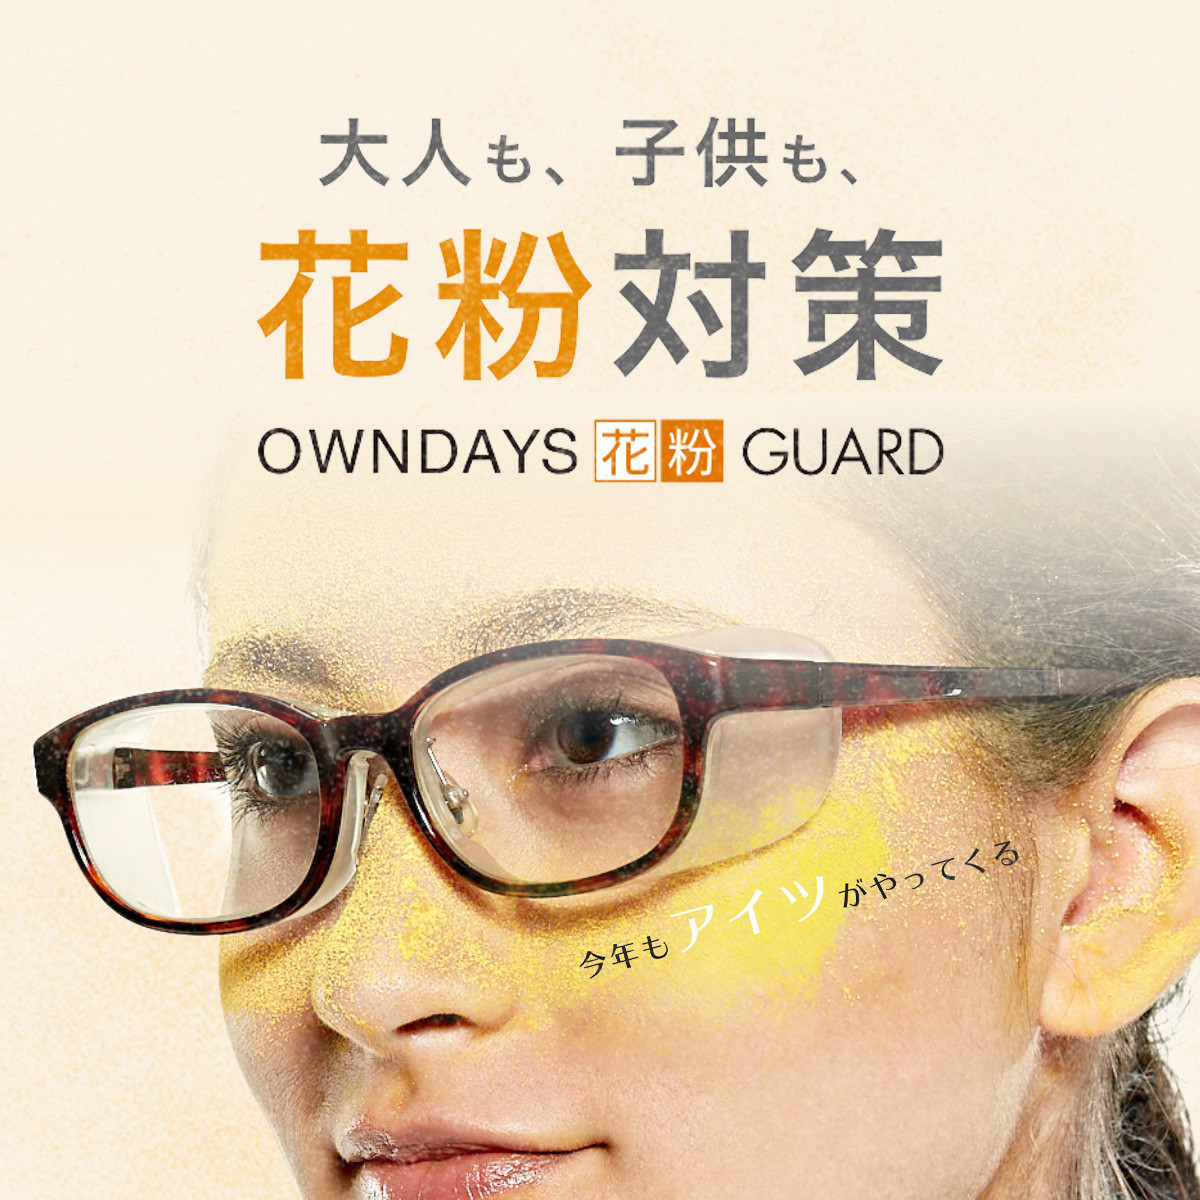 OWNDAYS 花粉 GUARD